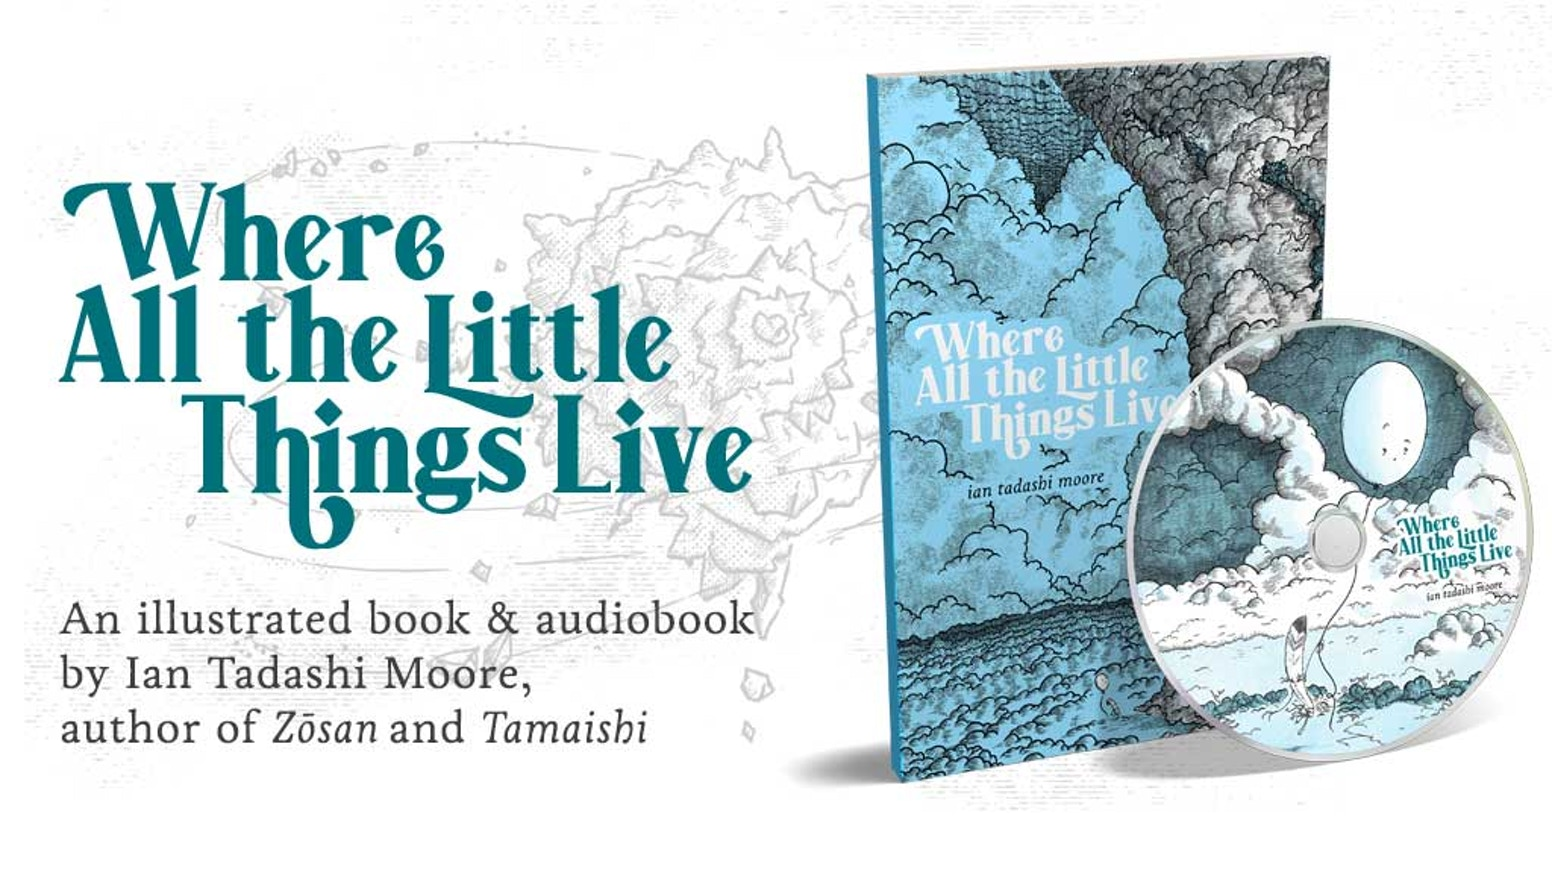 A new book & audiobook for young readers by Ian Tadashi Moore, author of Zōsan and Tamaishi.